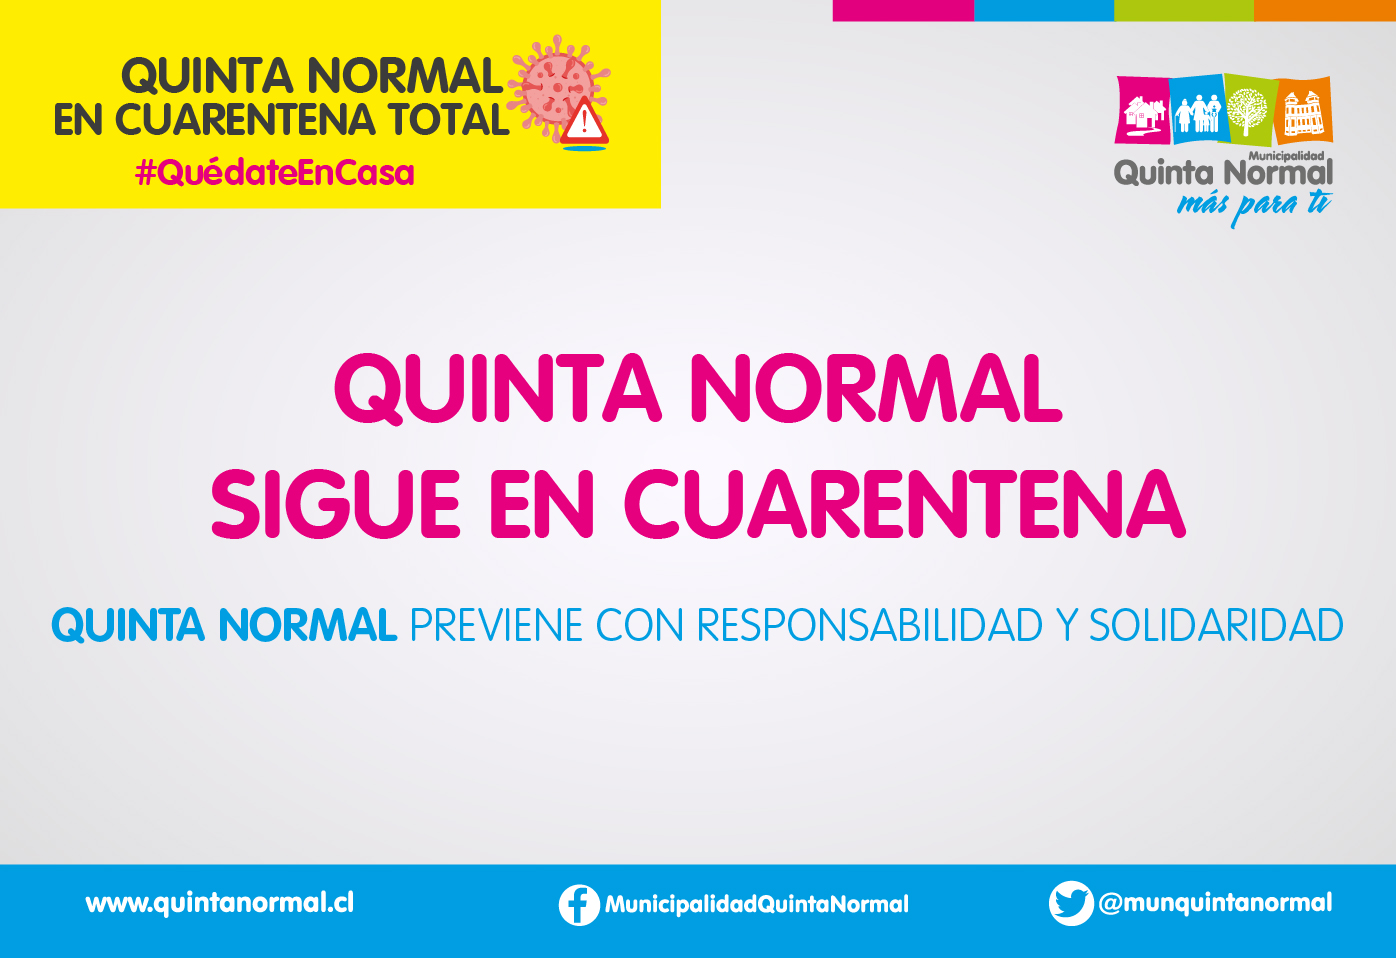 Quinta Normal sigue en Cuarentena